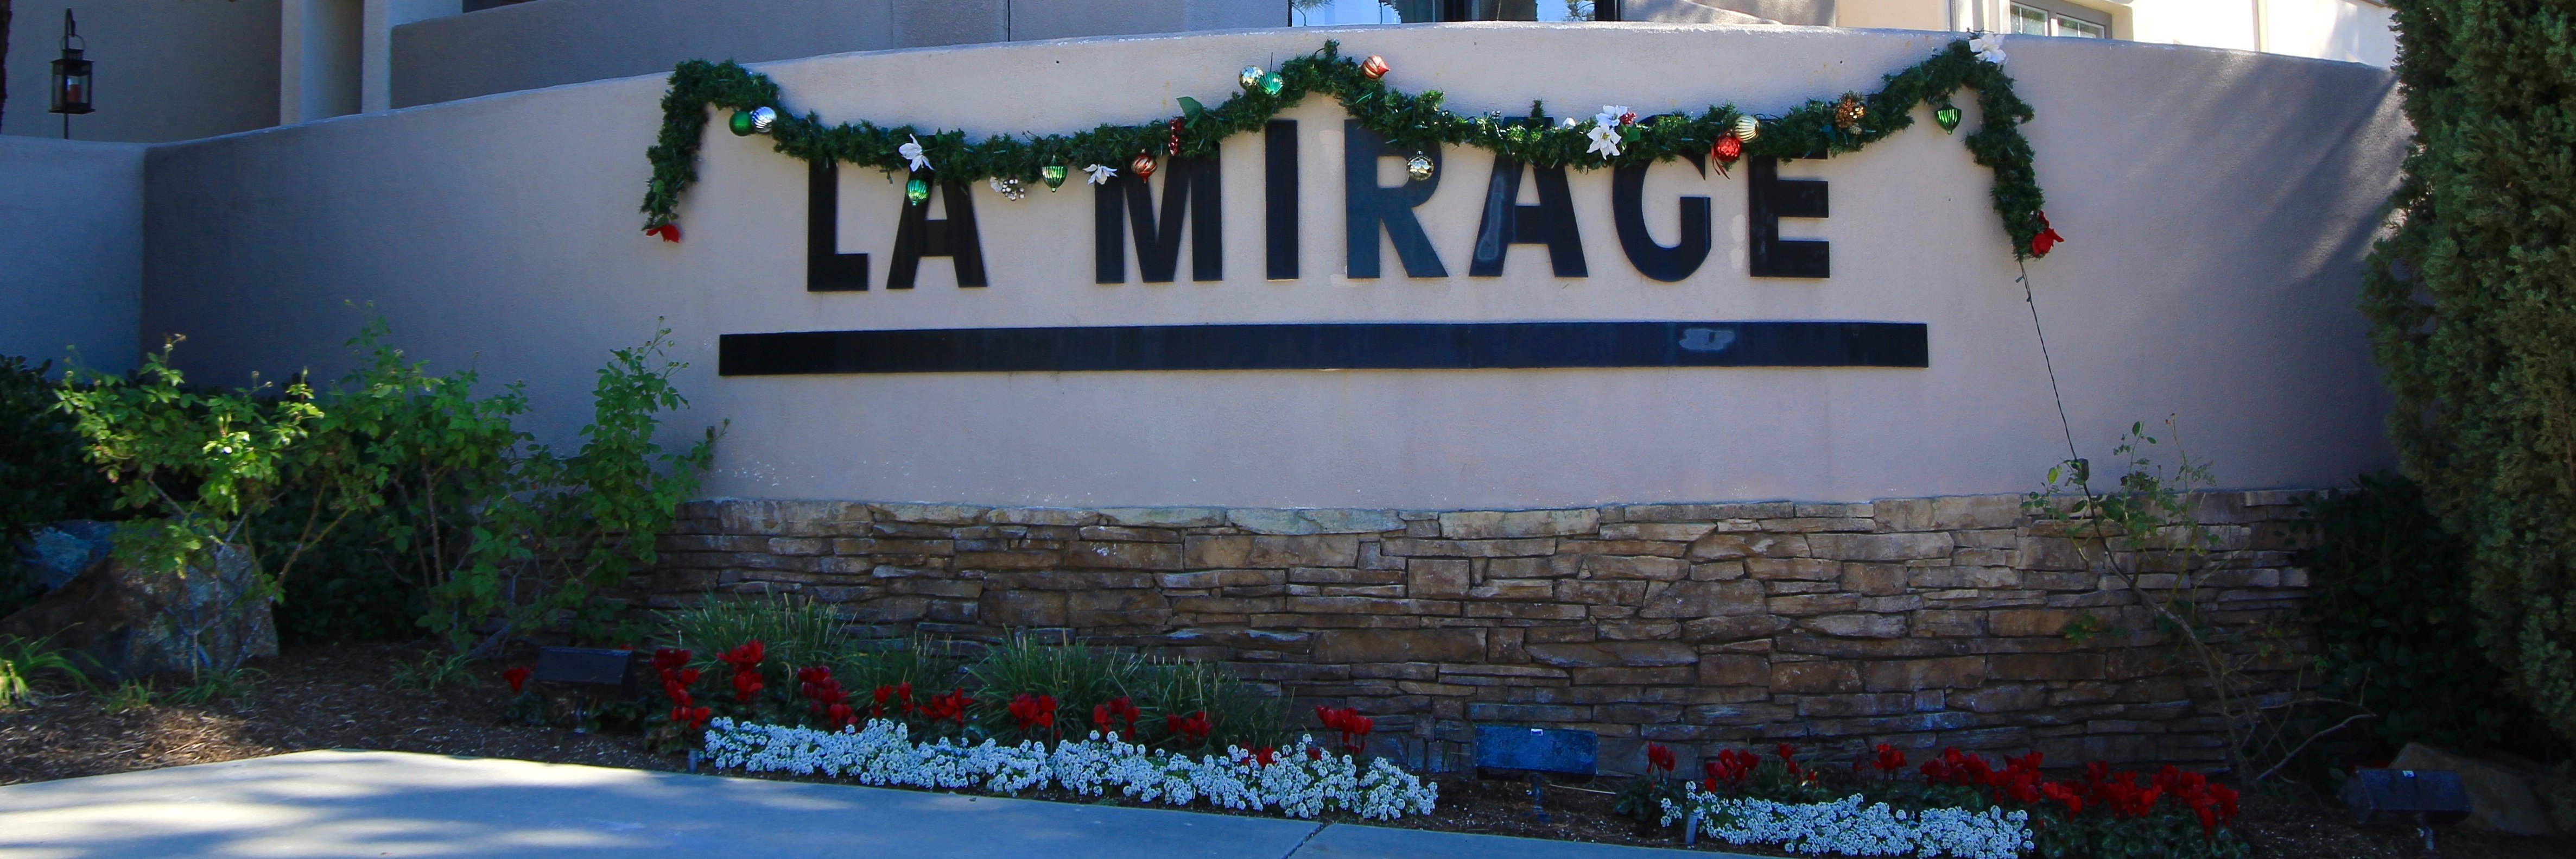 La Mirage Community Marquee in Aliso Viejo Ca